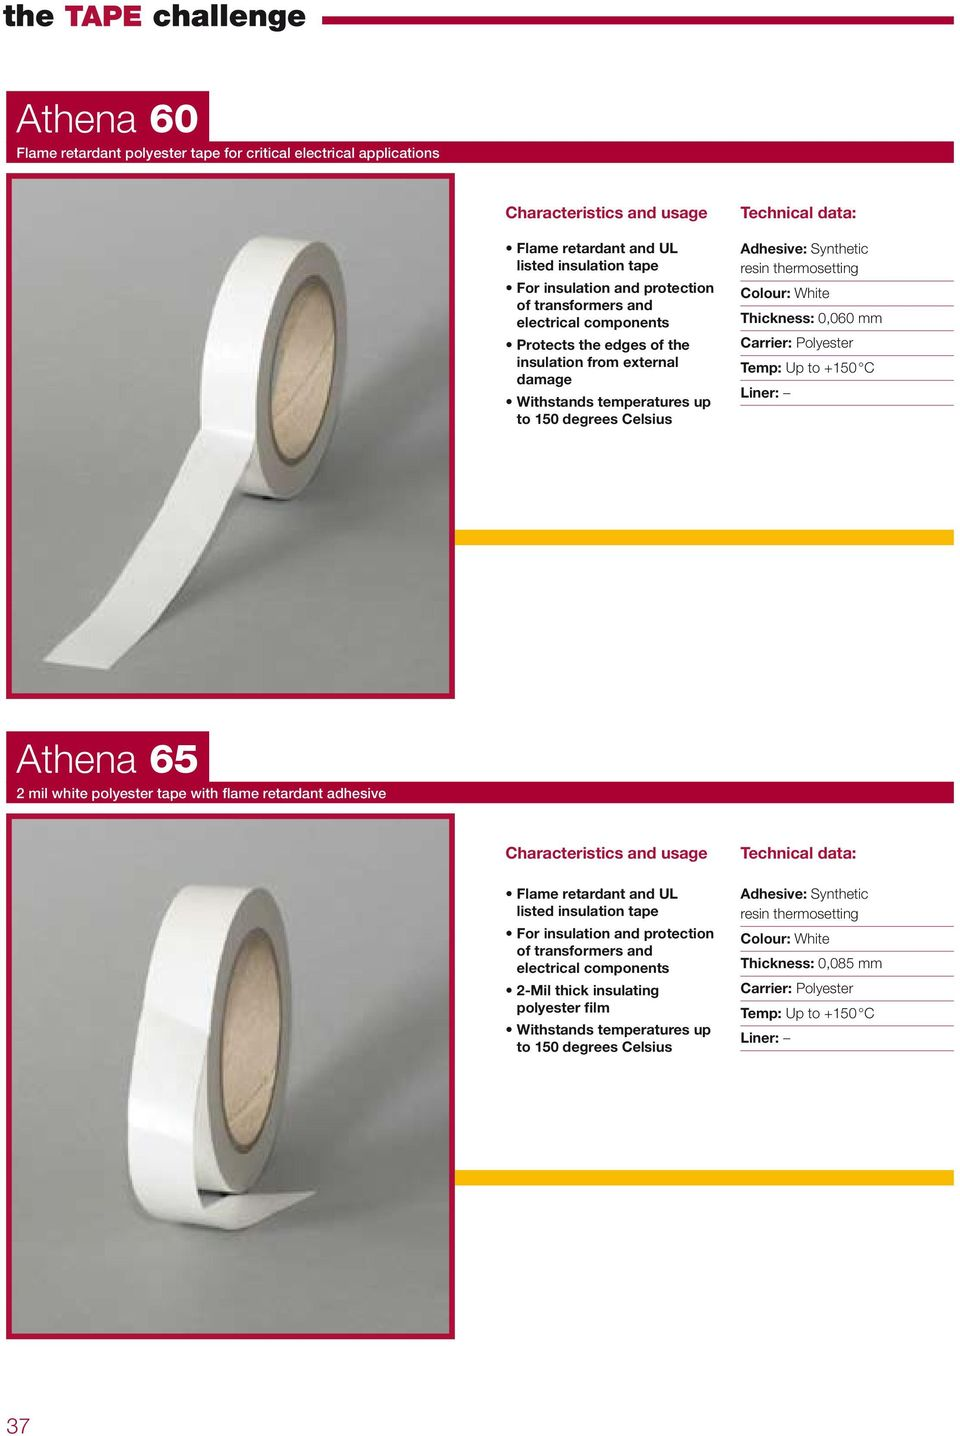 Polyester Temp: Up to +150 C Athena 65 2 mil white polyester tape with flame retardant adhesive Flame retardant and UL listed insulation tape For insulation and protection of transformers and